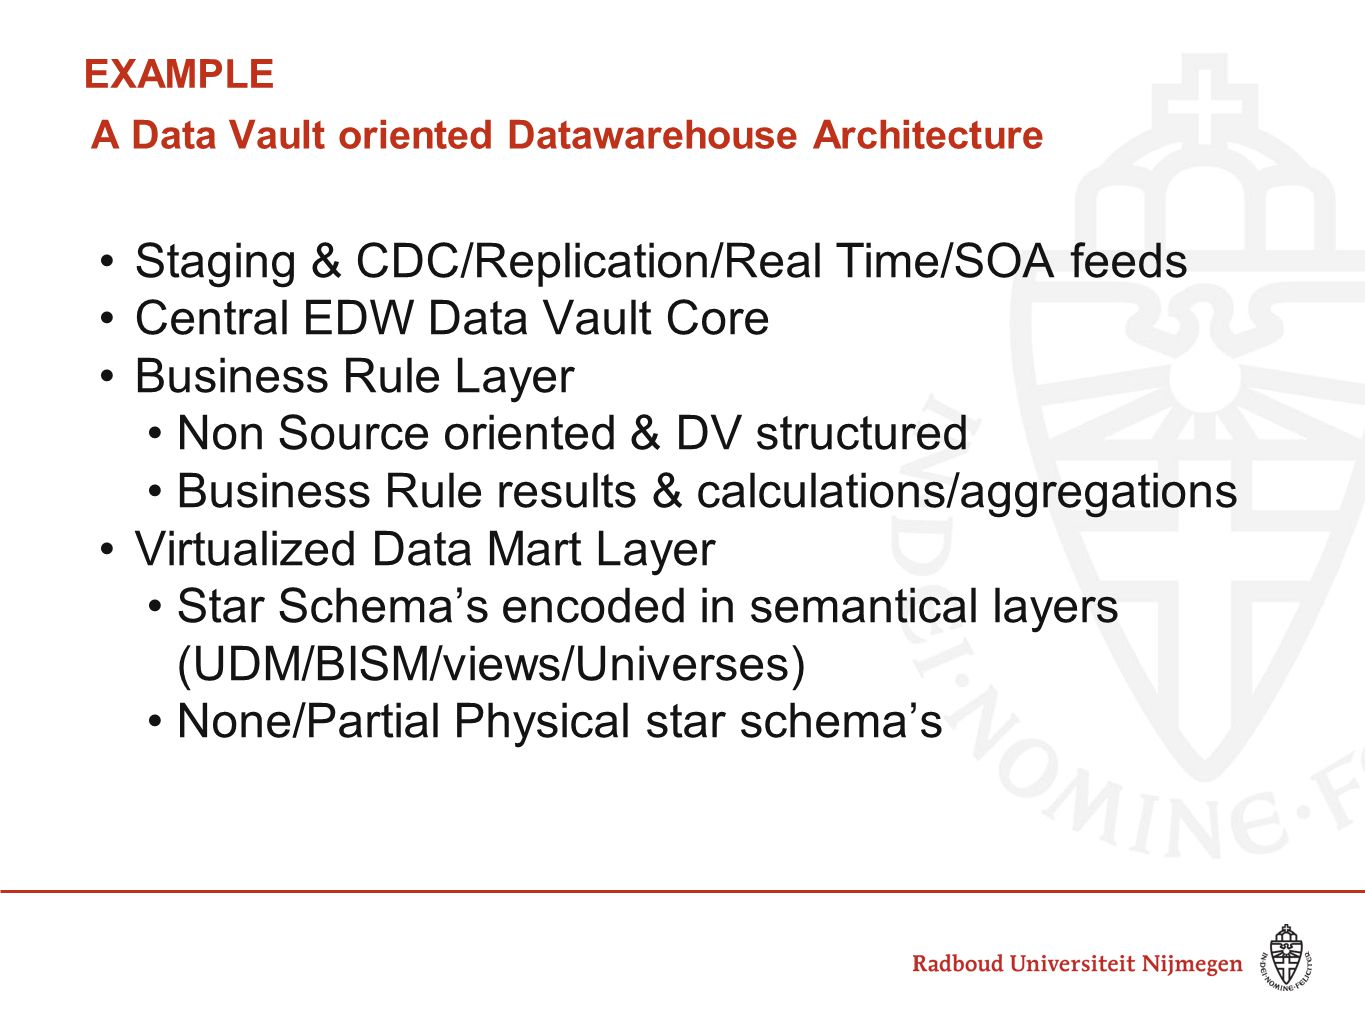 A Data Vault oriented Datawarehouse Architecture